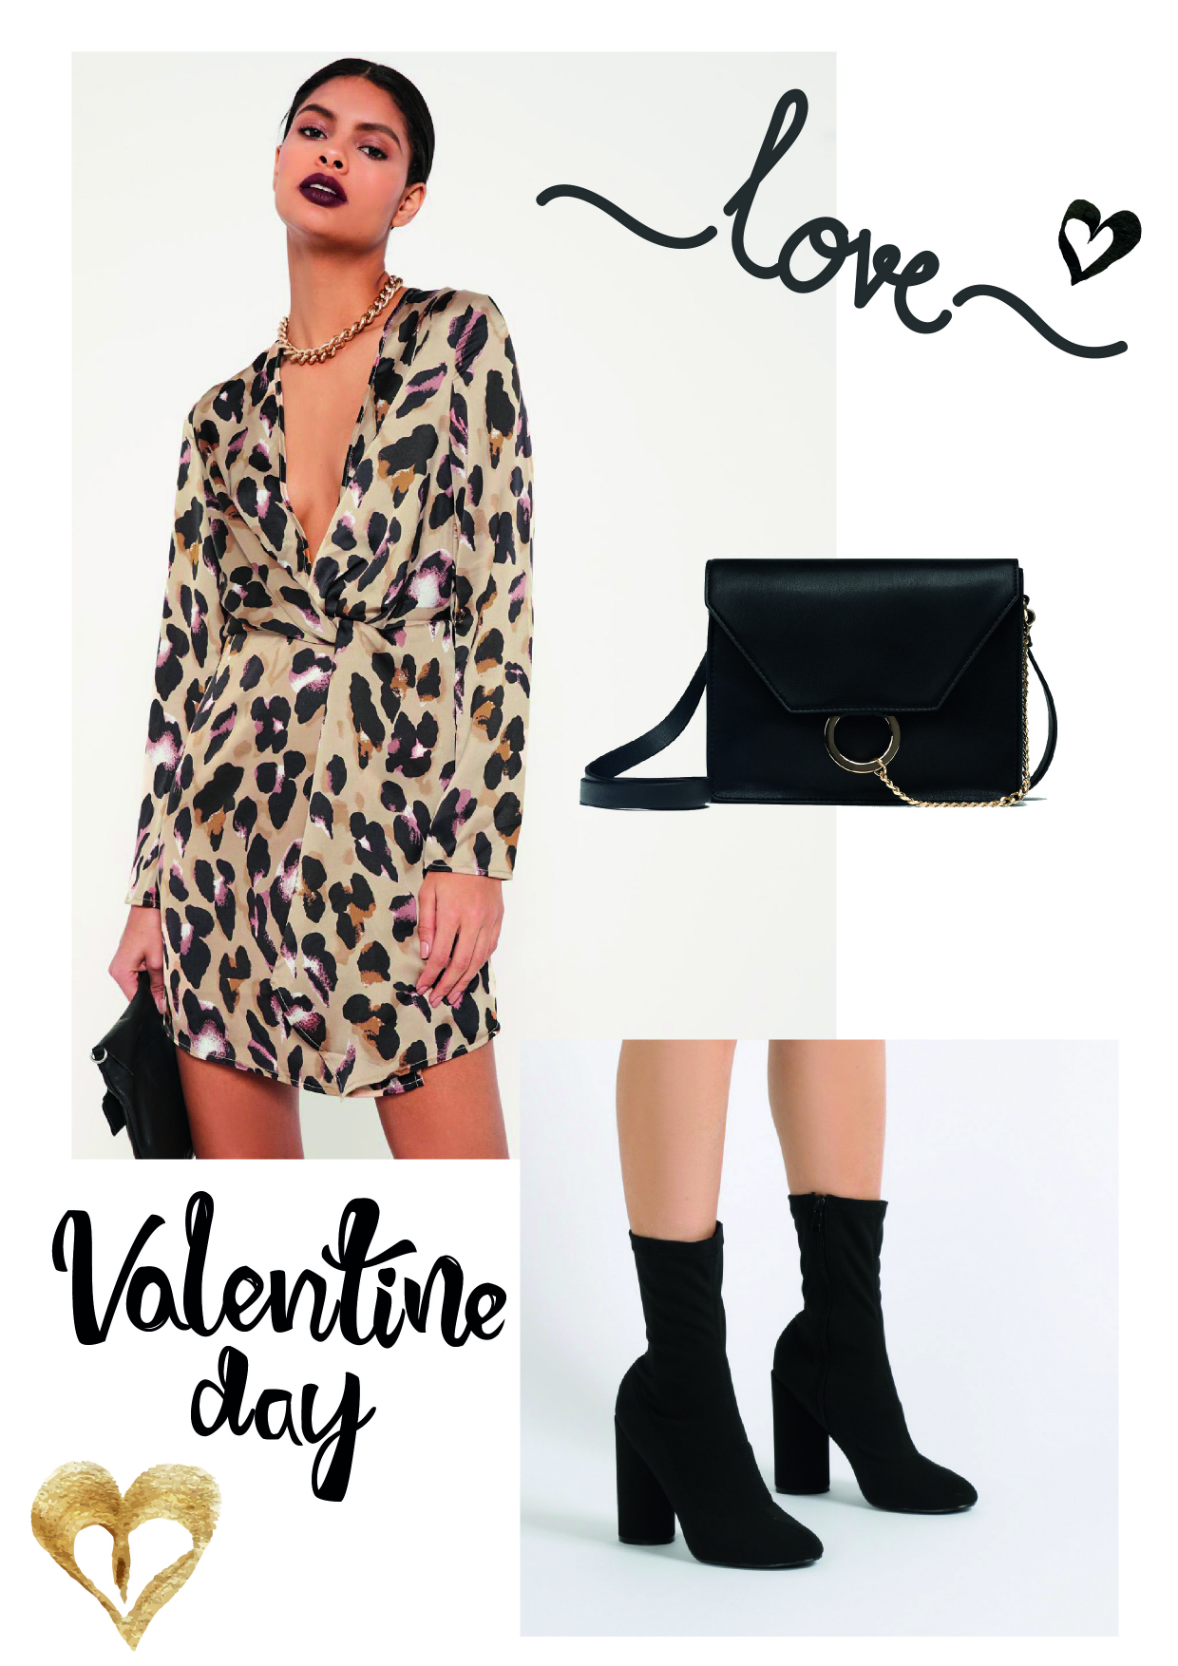 happinesscoco_stvalentin_tenue_3